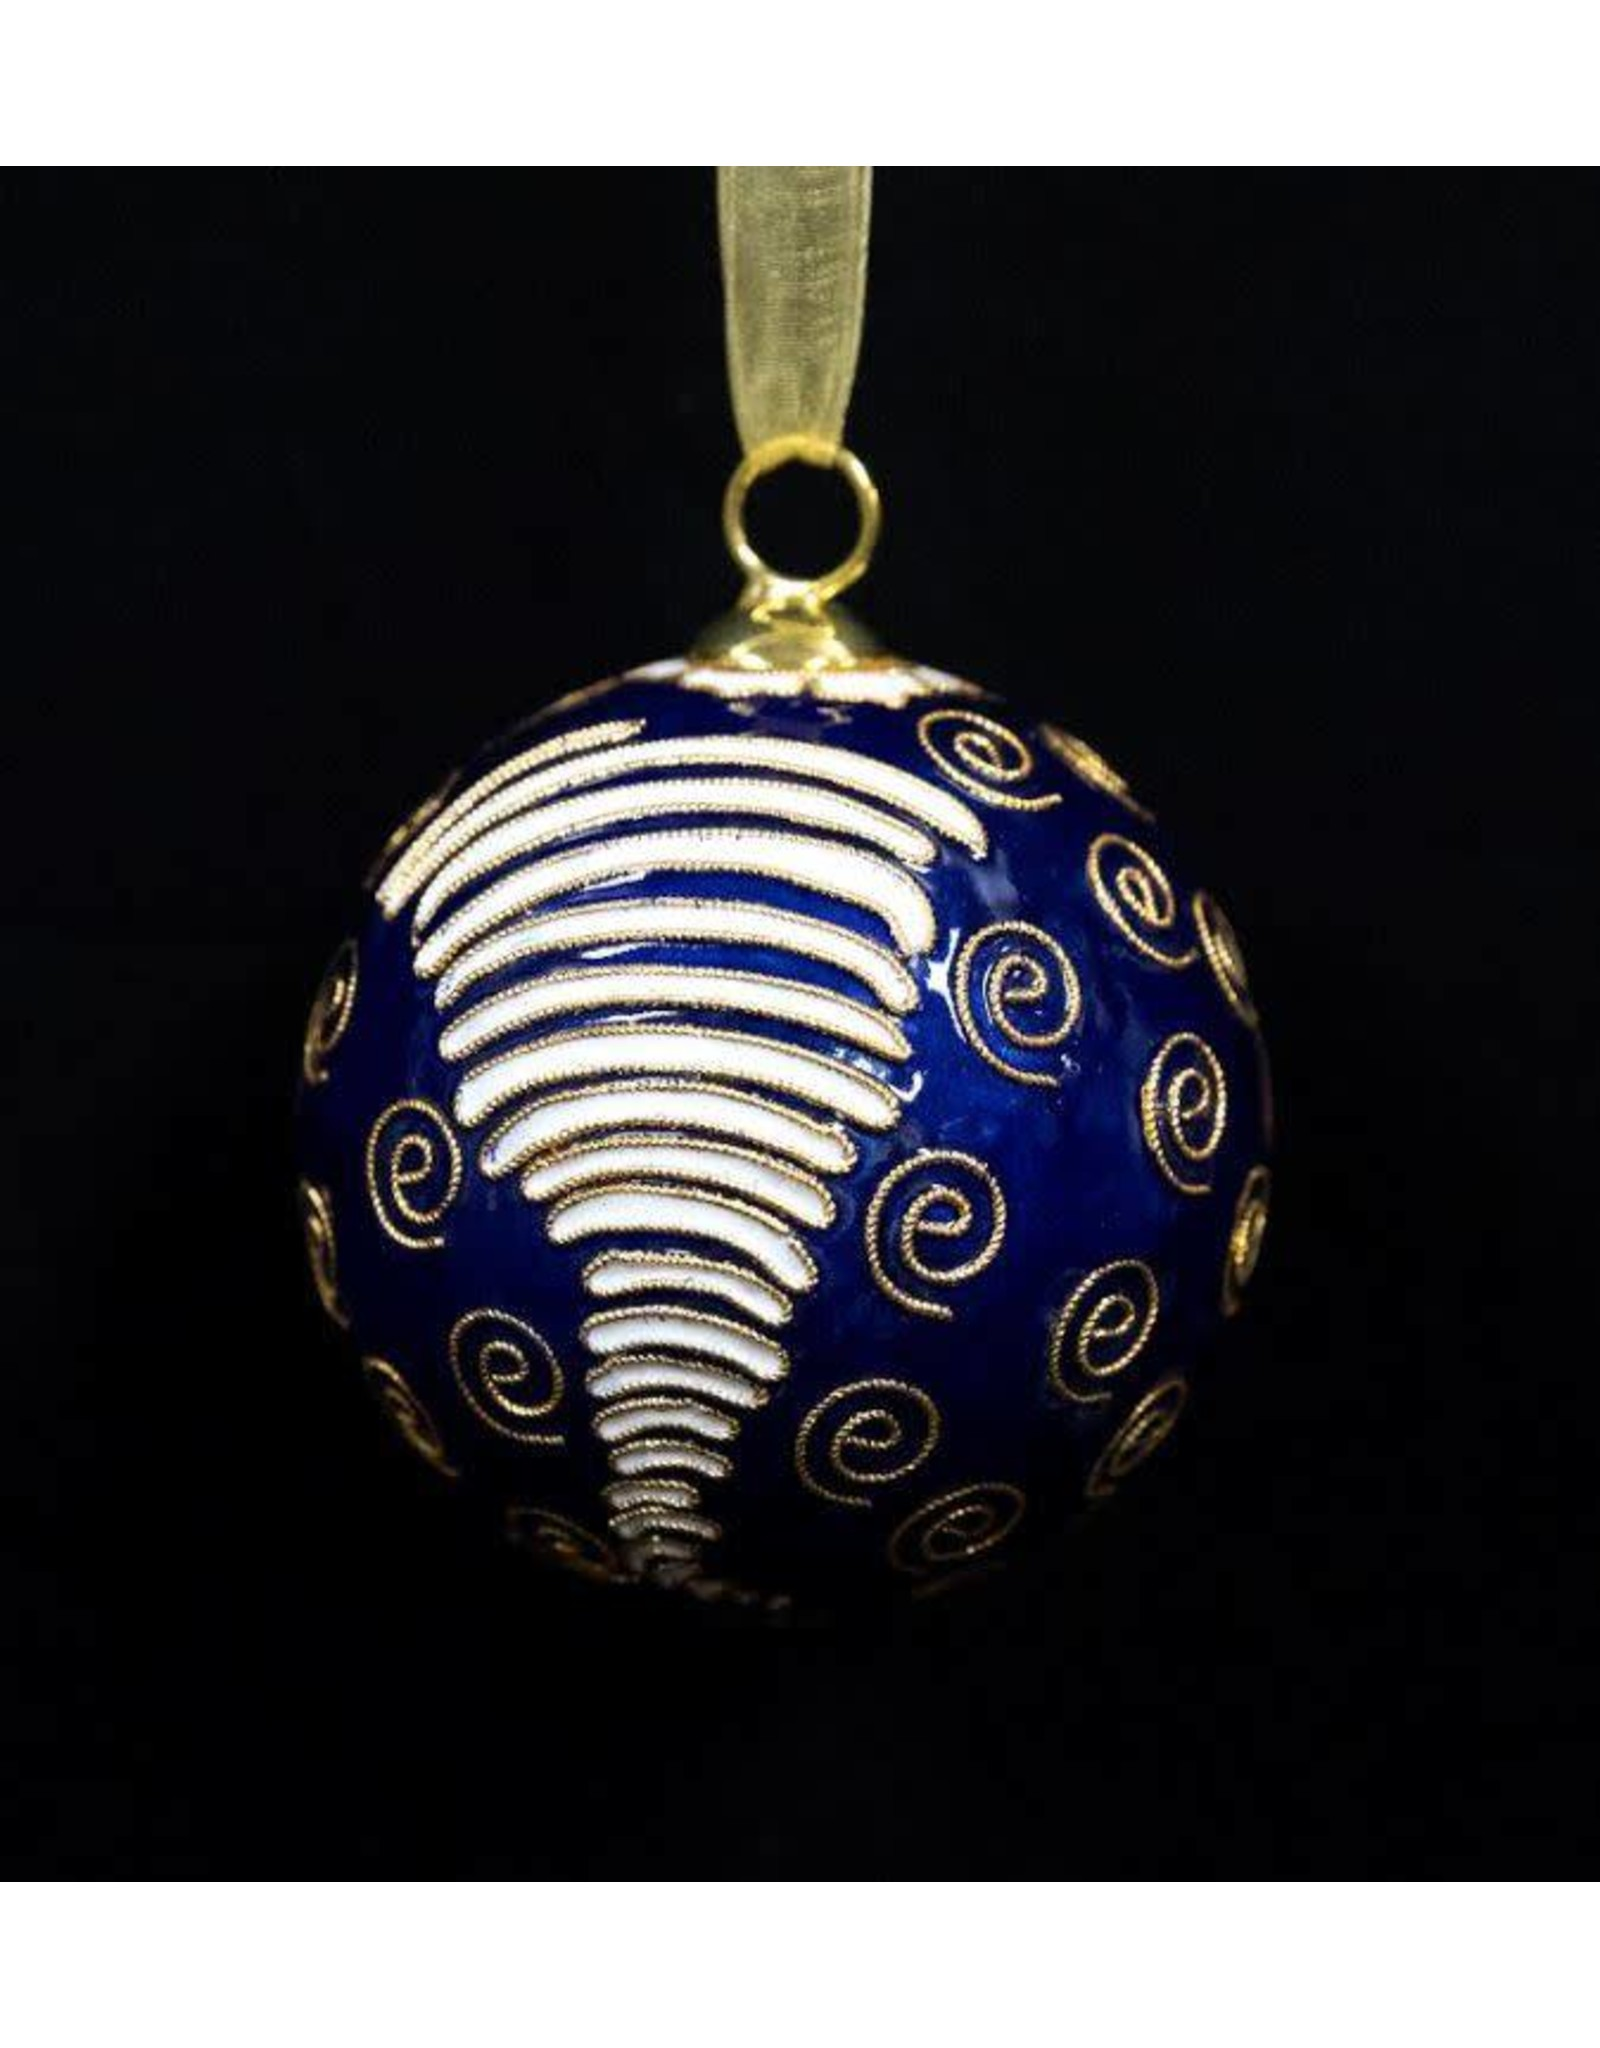 KK BLUE TORNADO ORNAMENT